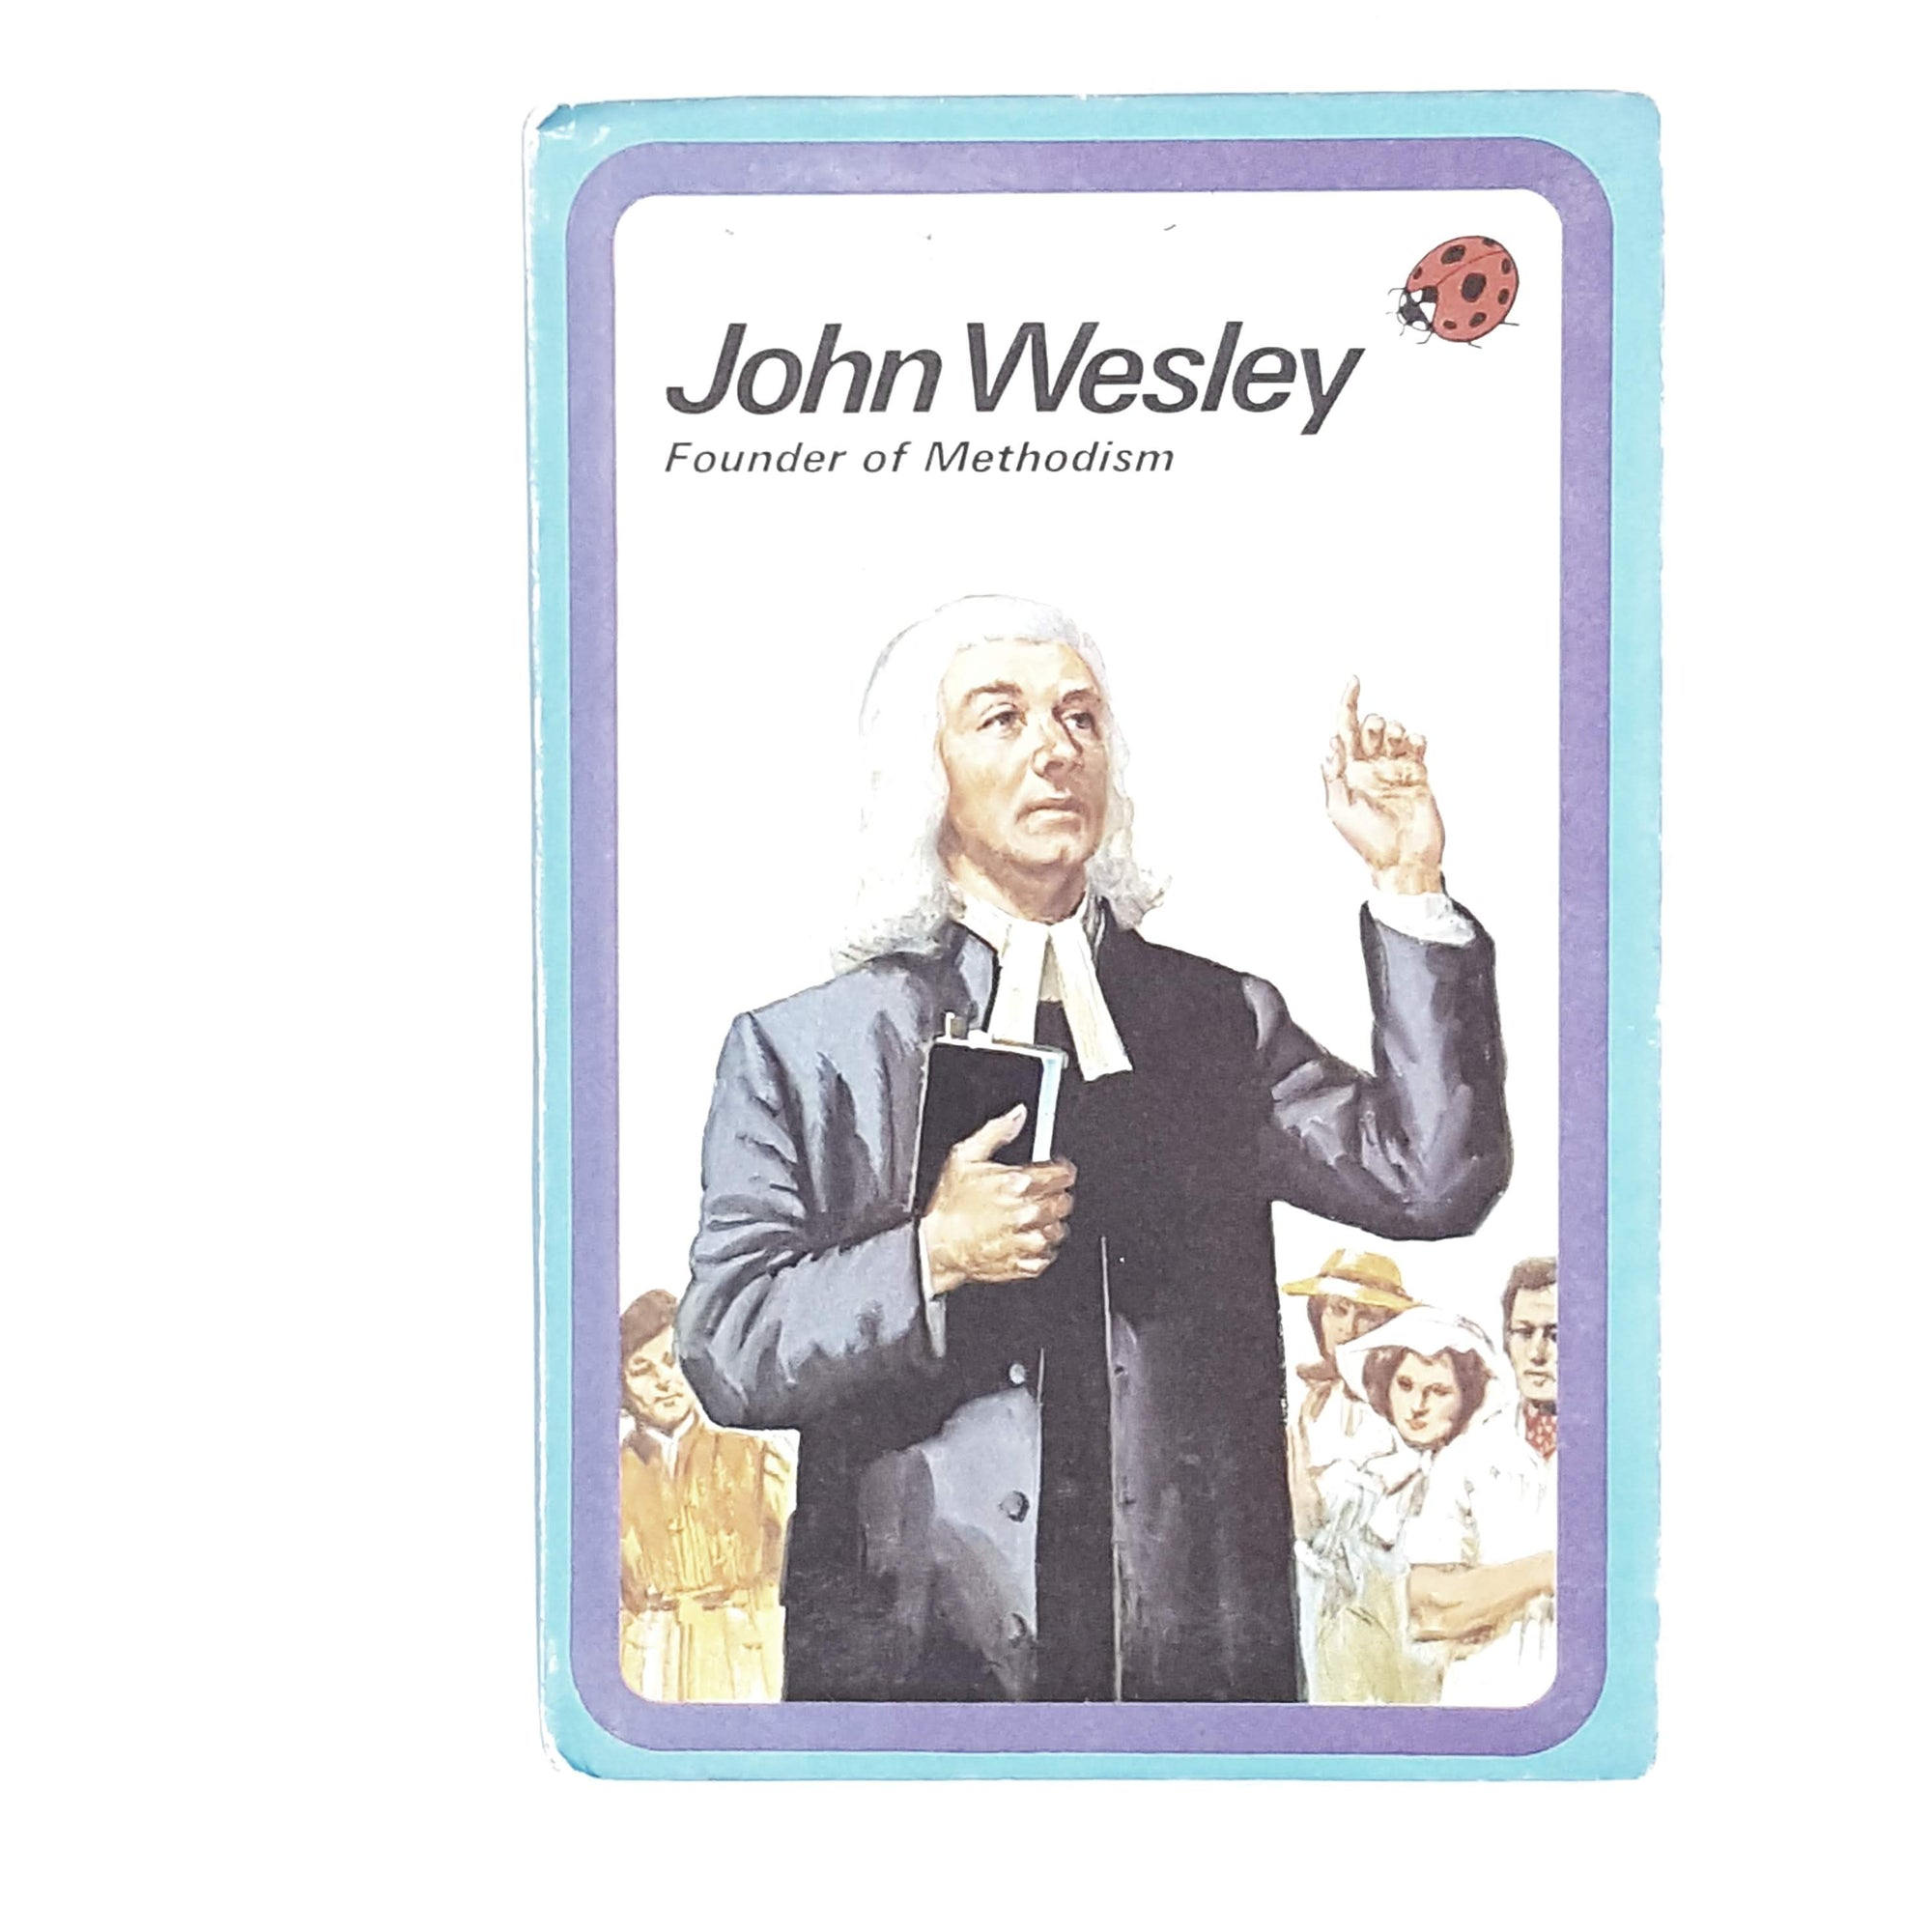 ladybird-history-john-wesley-1977-vintage-kindergarten-books-online-bookstore-country-house-library